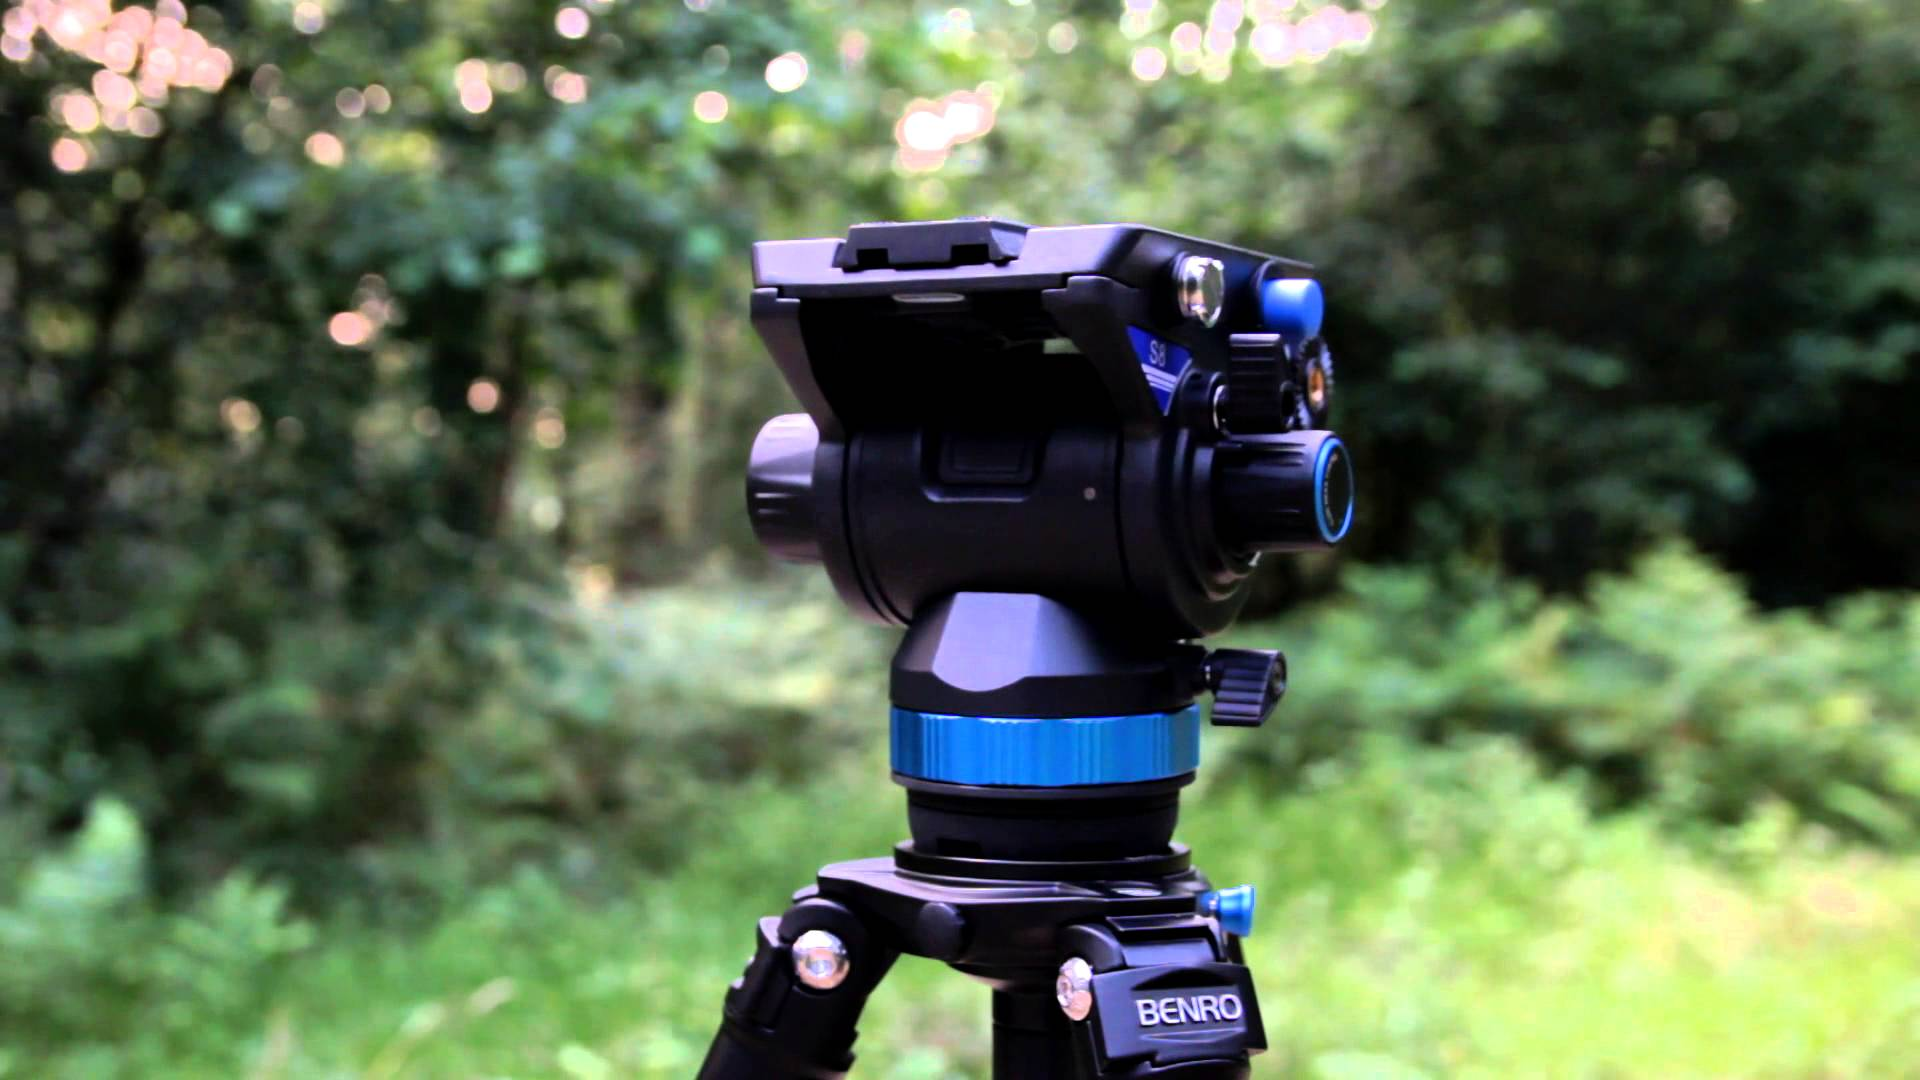 Benro S8 Tripod Review